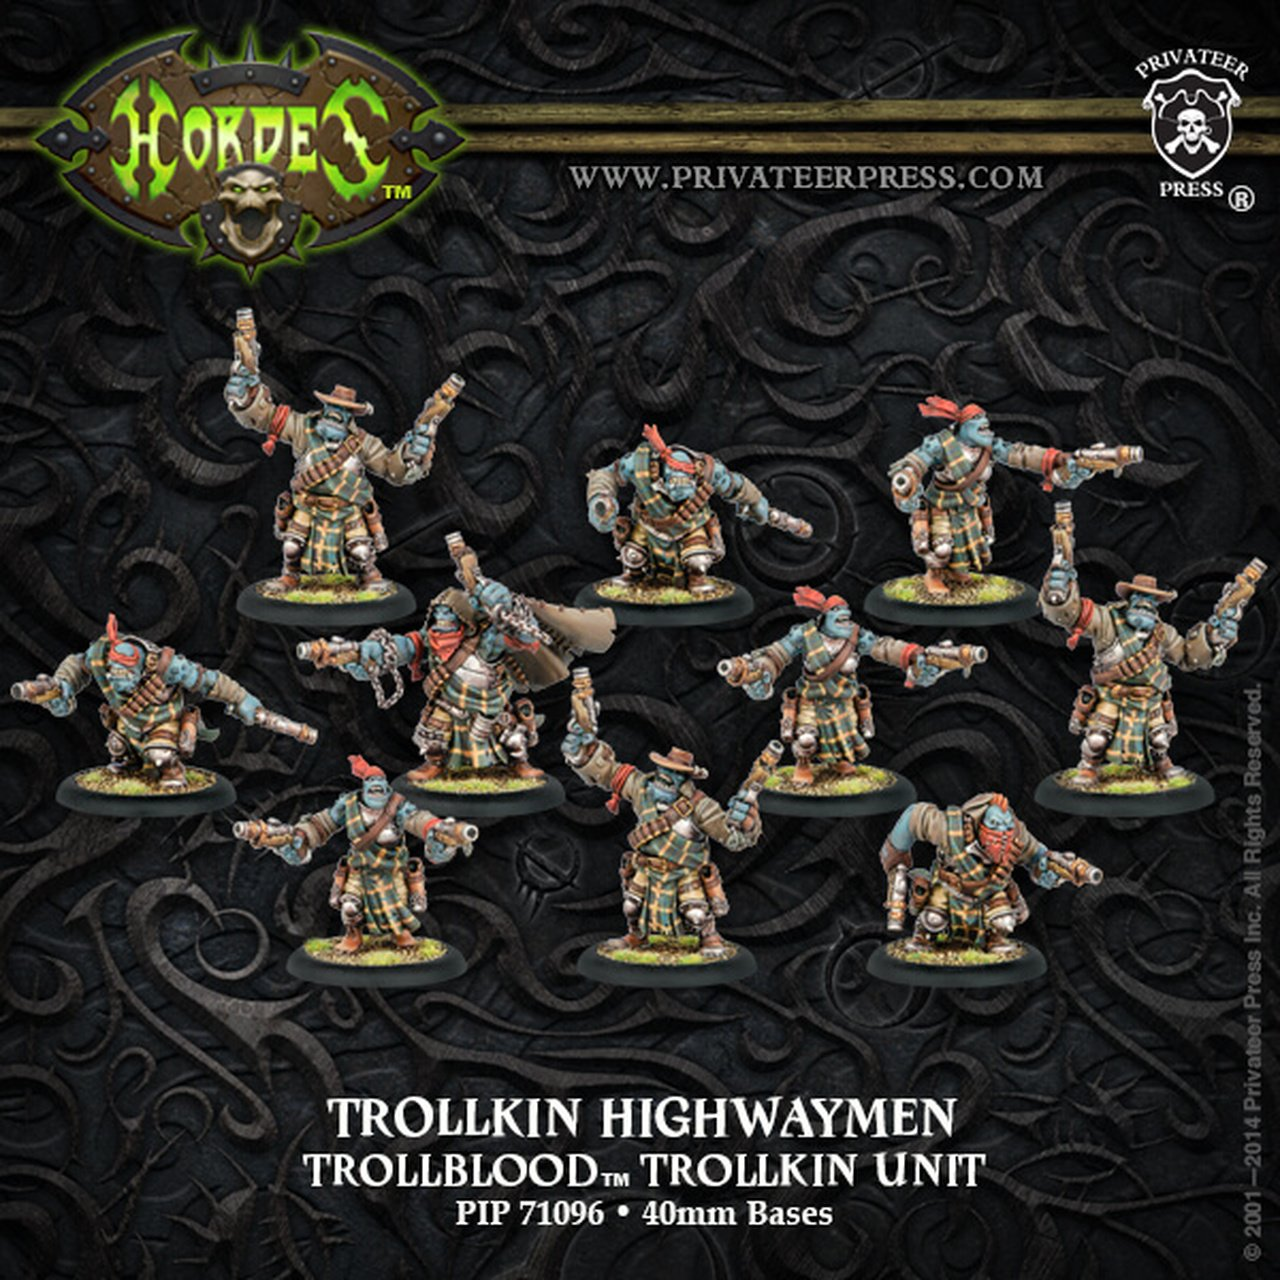 Trollblood - Trollkin Highwaymen Unit | All About Games